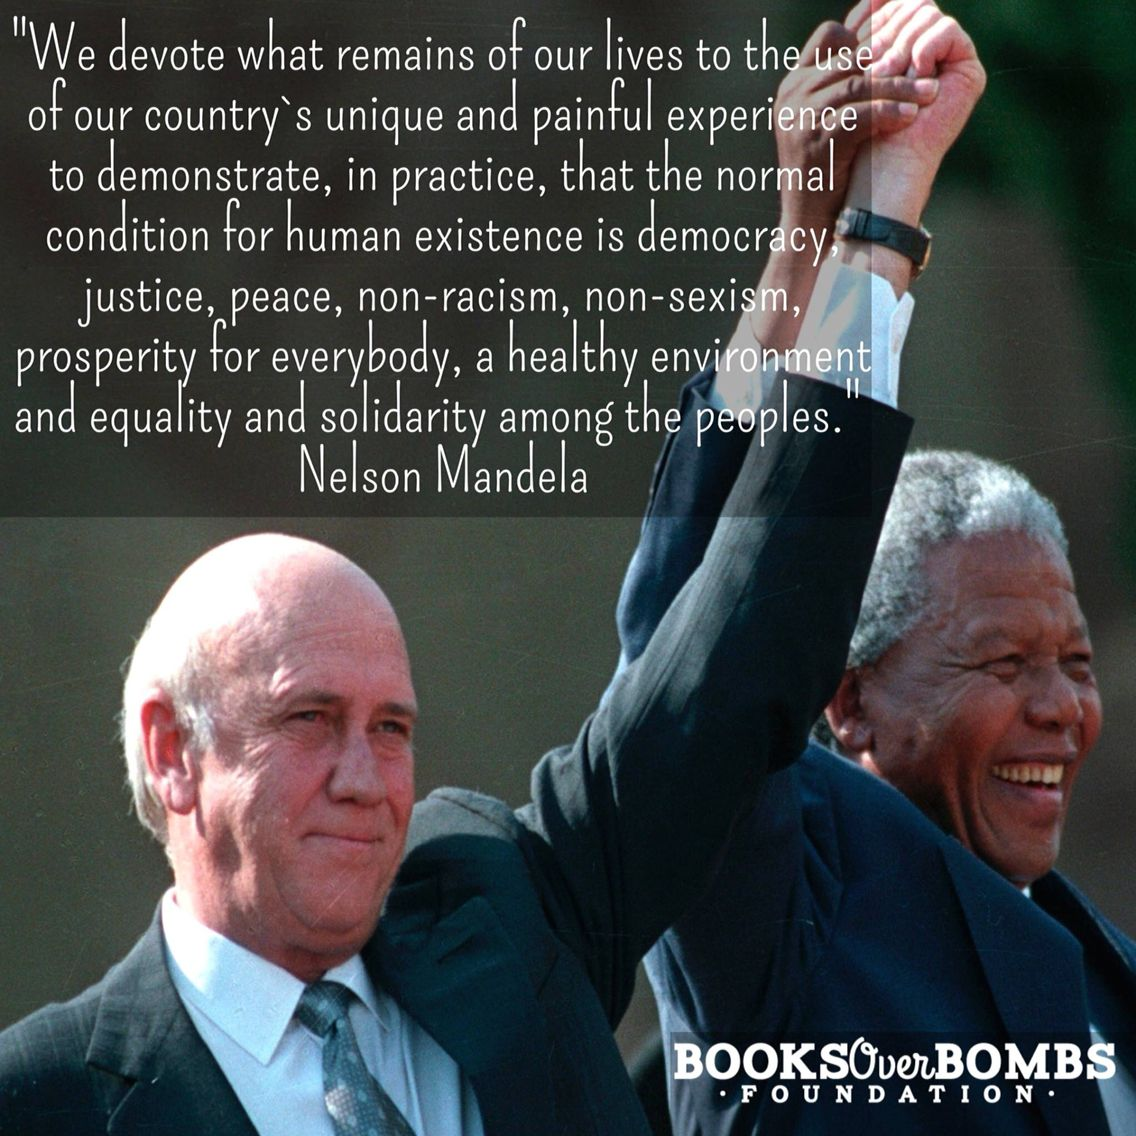 21 years ago today, Mandela and De Klerk were awarded the Nobel Peace Prize #BooksOverBombs